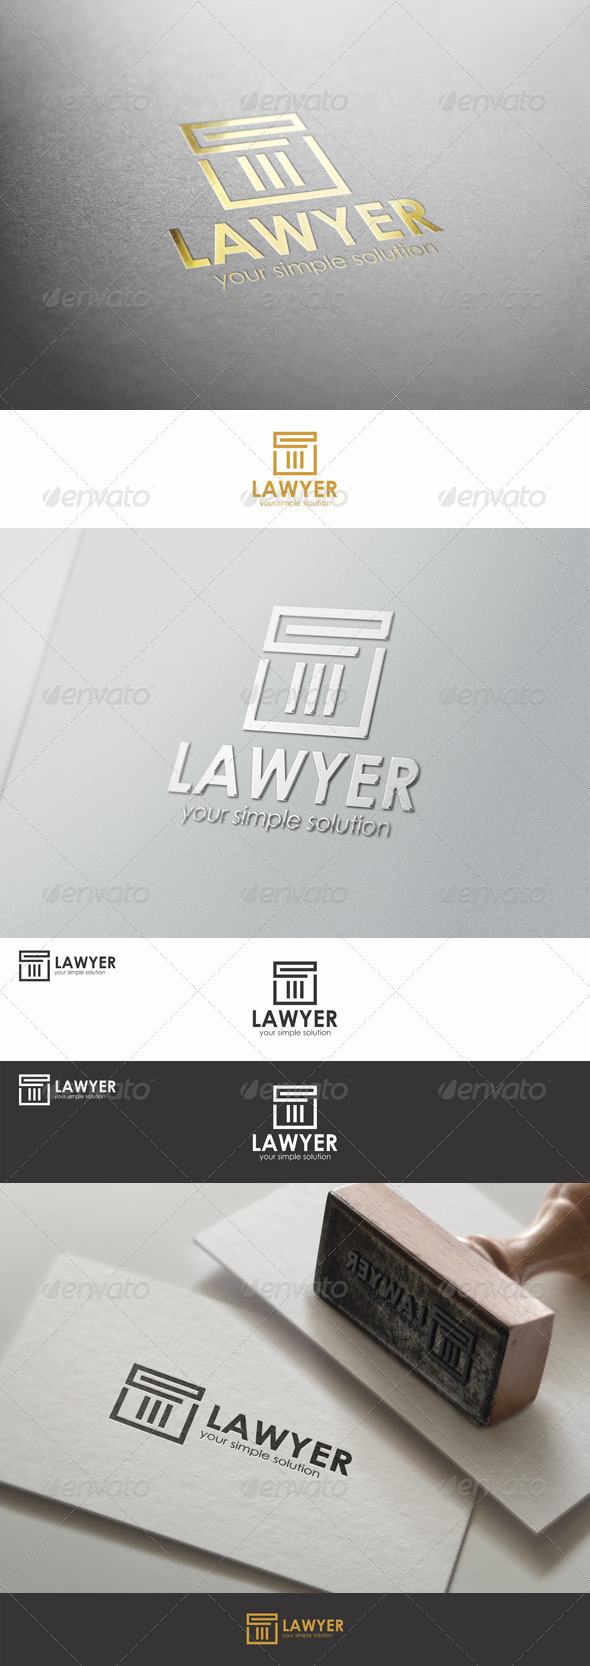 GraphicRiver Lawyer Justice Firm Logo 8566294